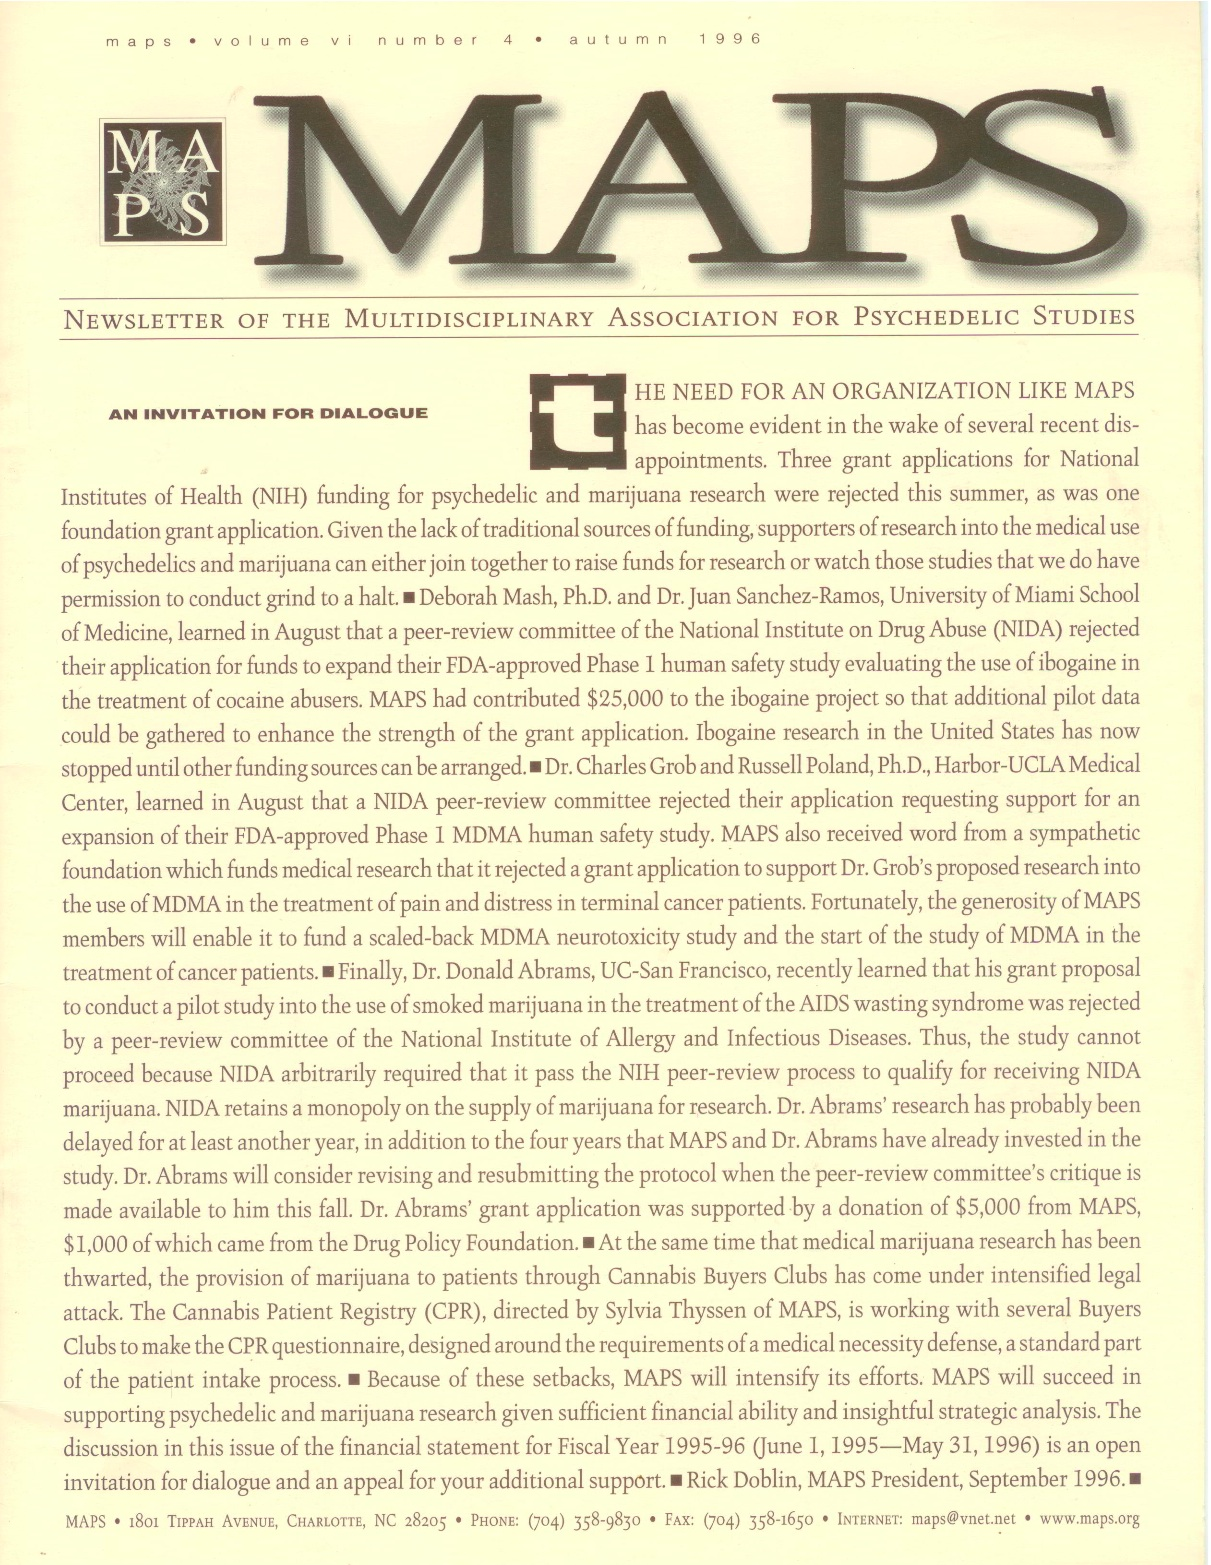 MAPS Bulletin Vol vi No 4: Autumn 1996 - Front Cover Image - Psychedelic Art -  by